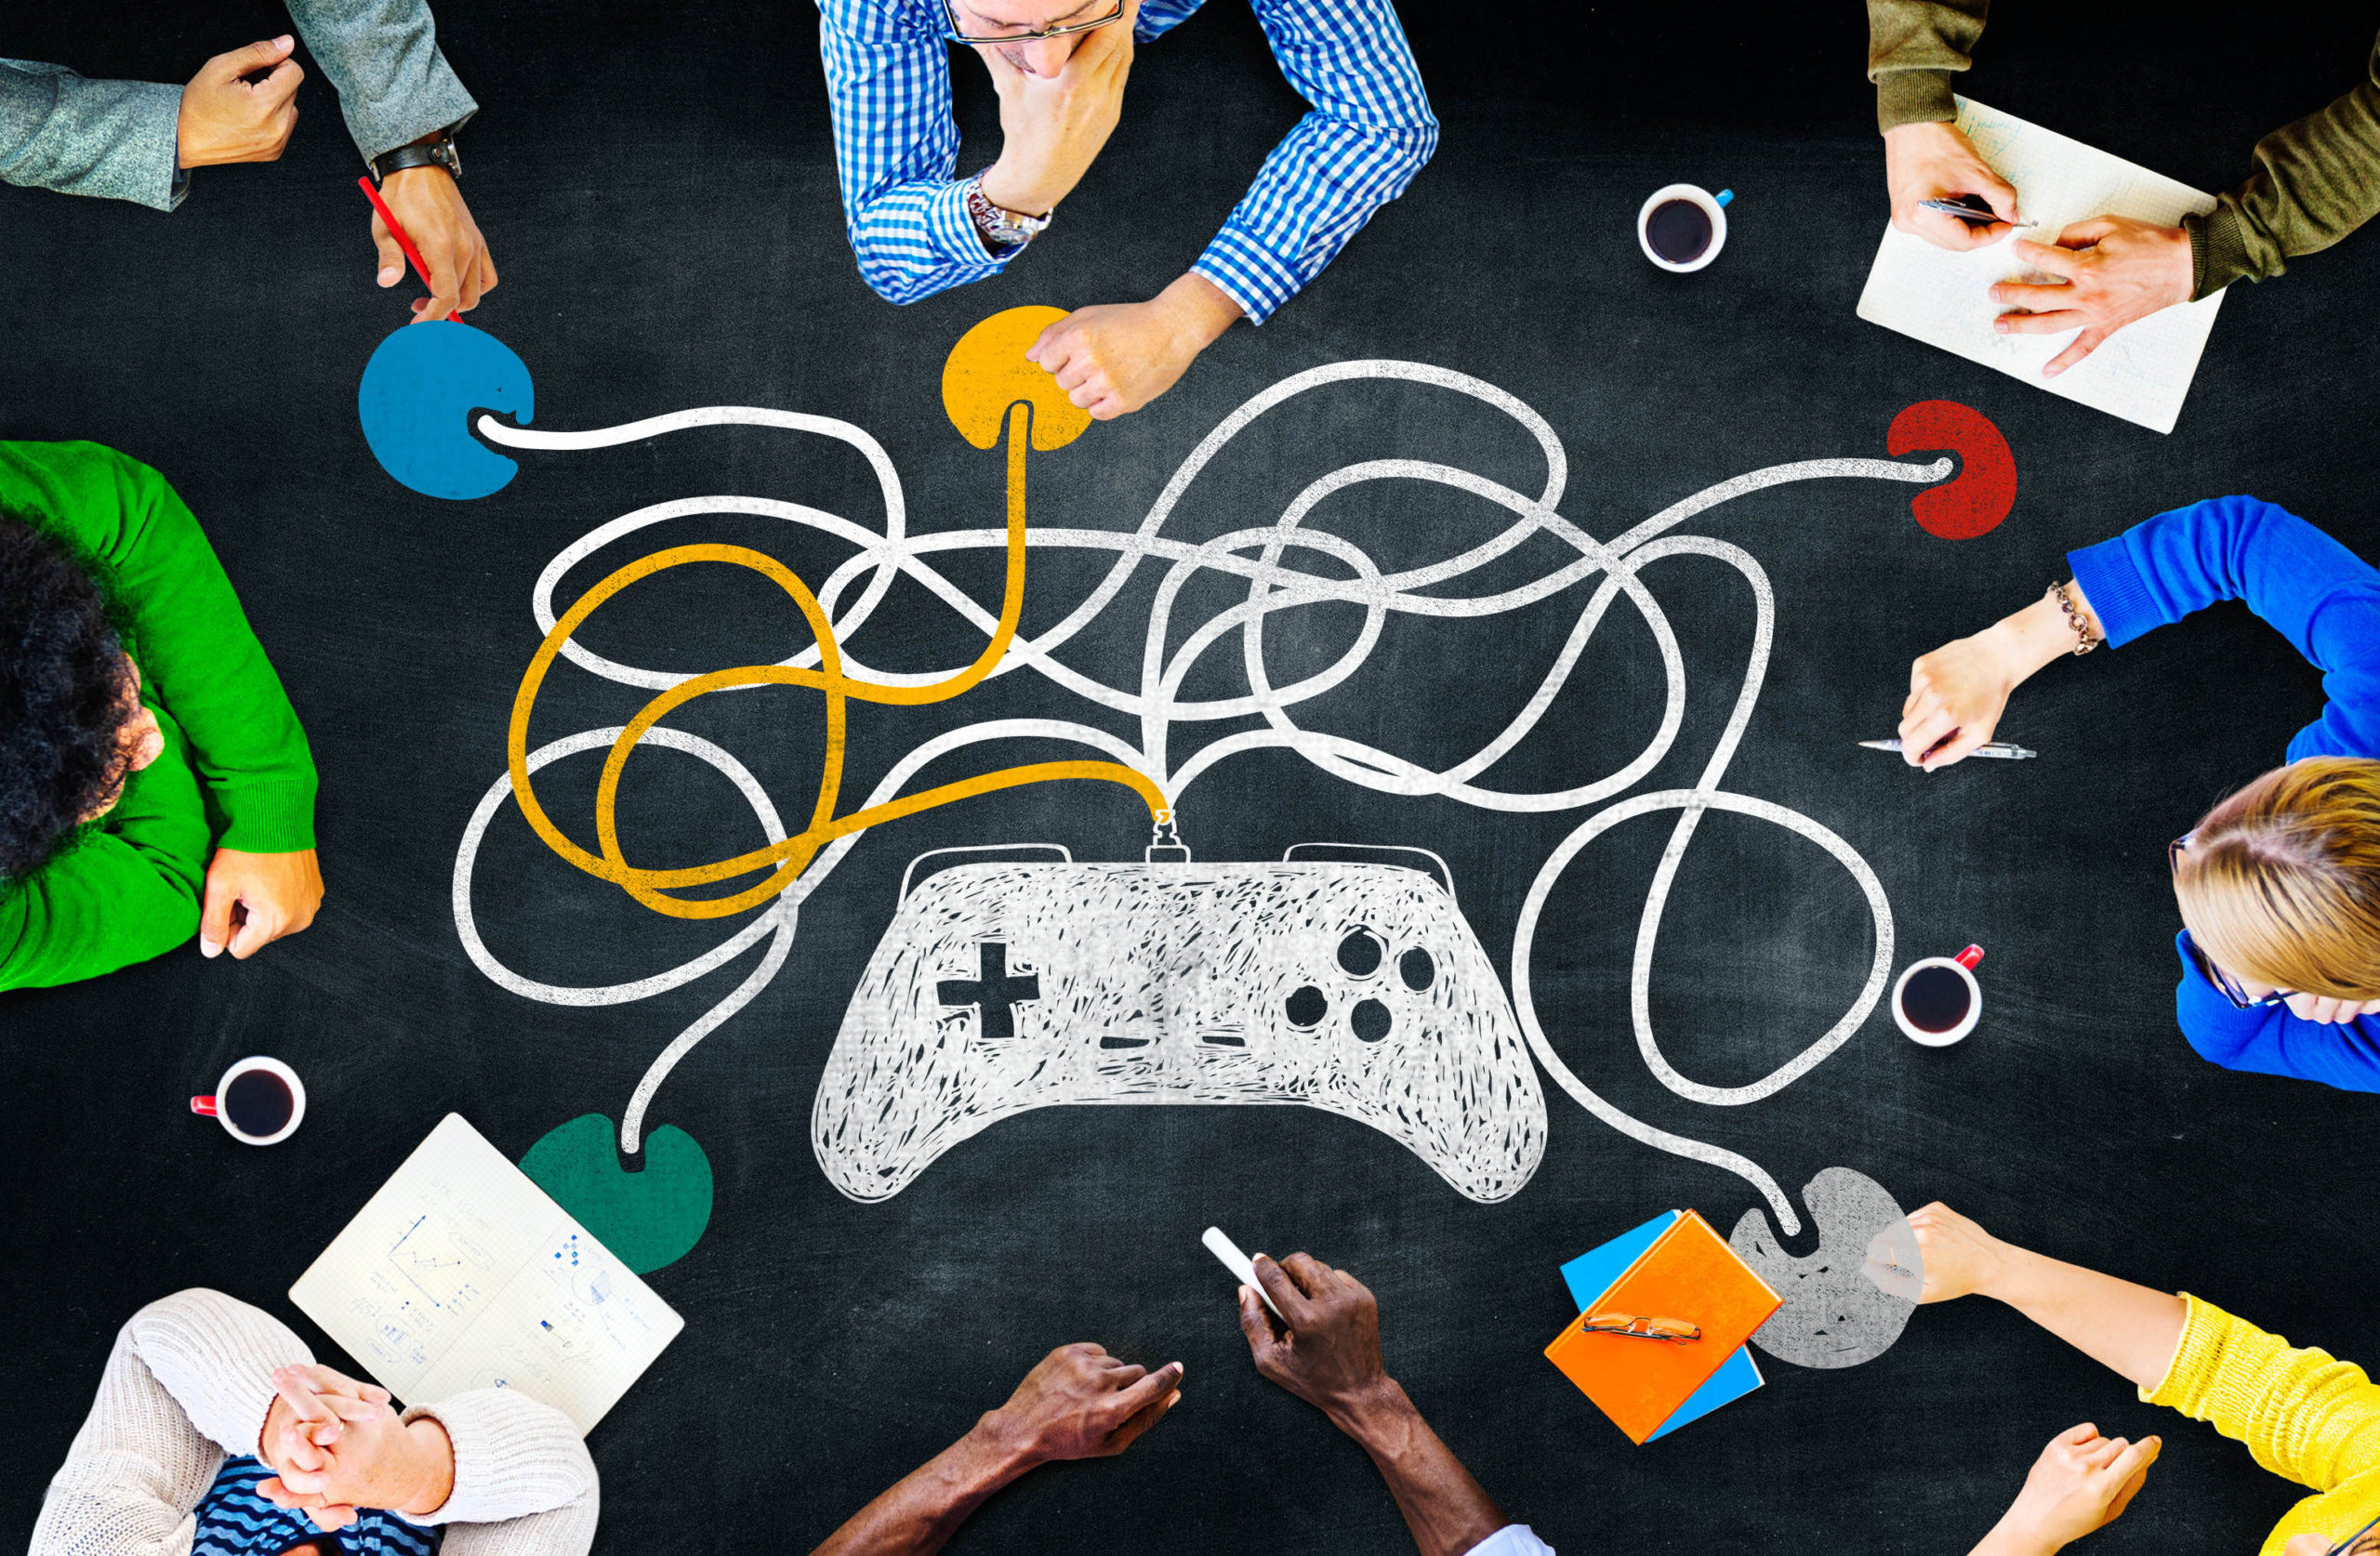 Learning a new language through games is beneficial. Are you learning Arabic for non-Arabic speakers? Click here to find out more.